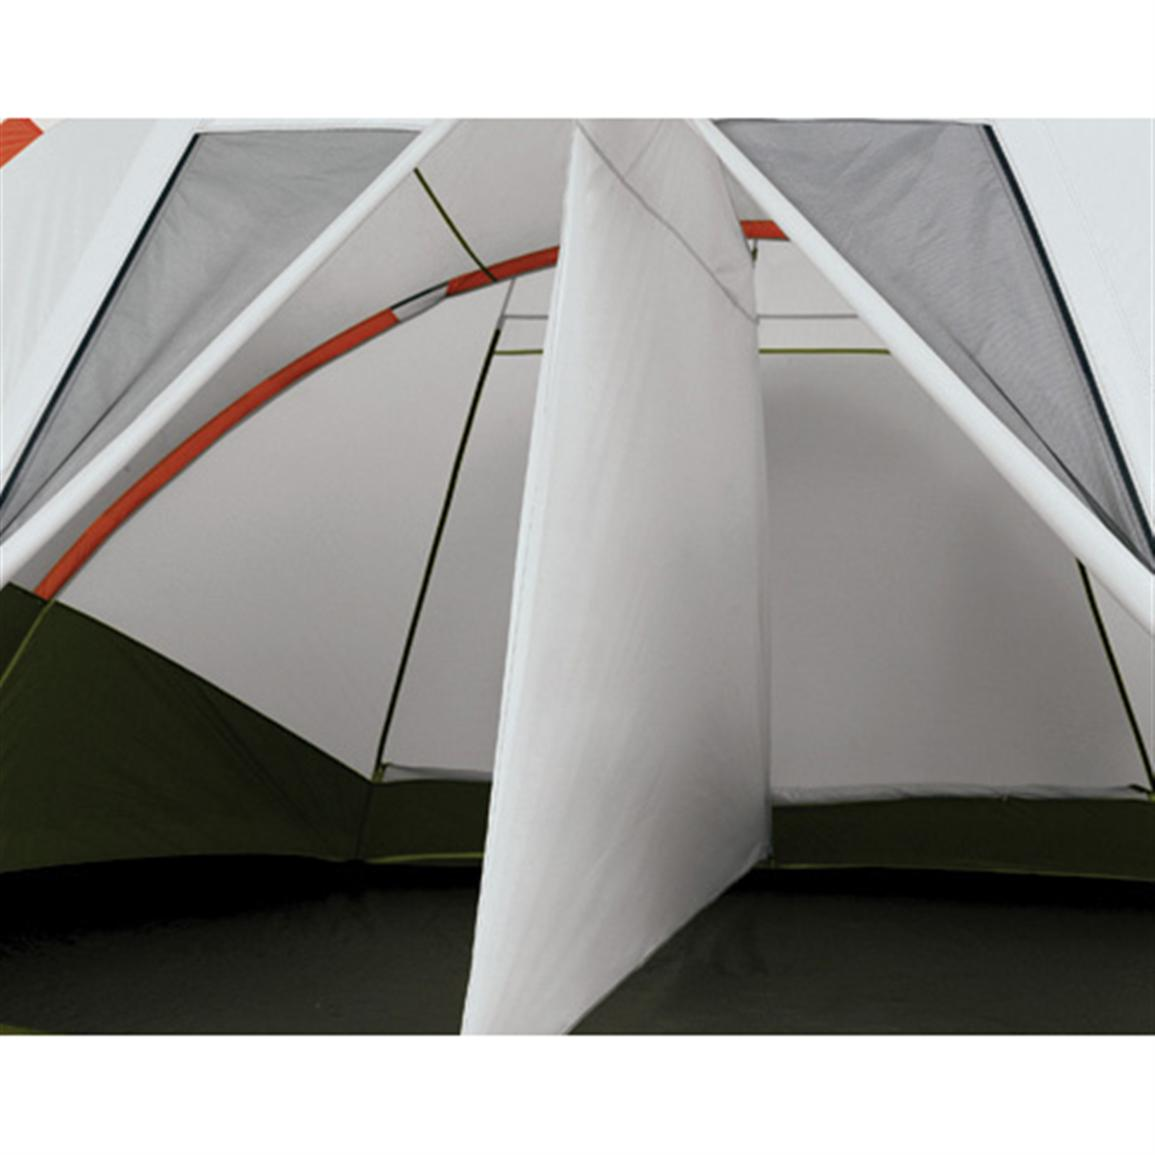 Swiss Gear Brienz Family Dome Tent · Removable ider creates 2 private rooms  sc 1 st  Sportsmanu0027s Guide & Swiss Gear™ Brienz Family Dome Tent - 134647 Backpacking Tents at ...